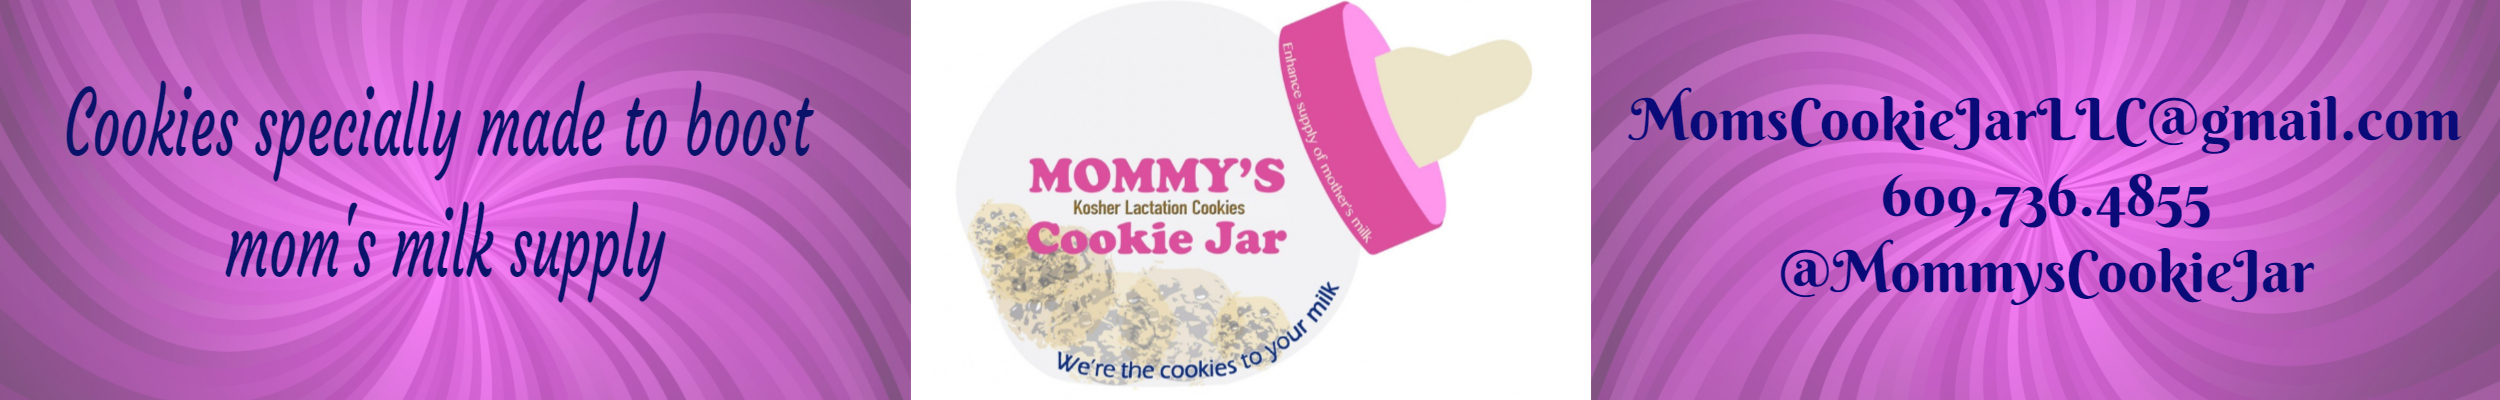 moms cookie jar web.jpg